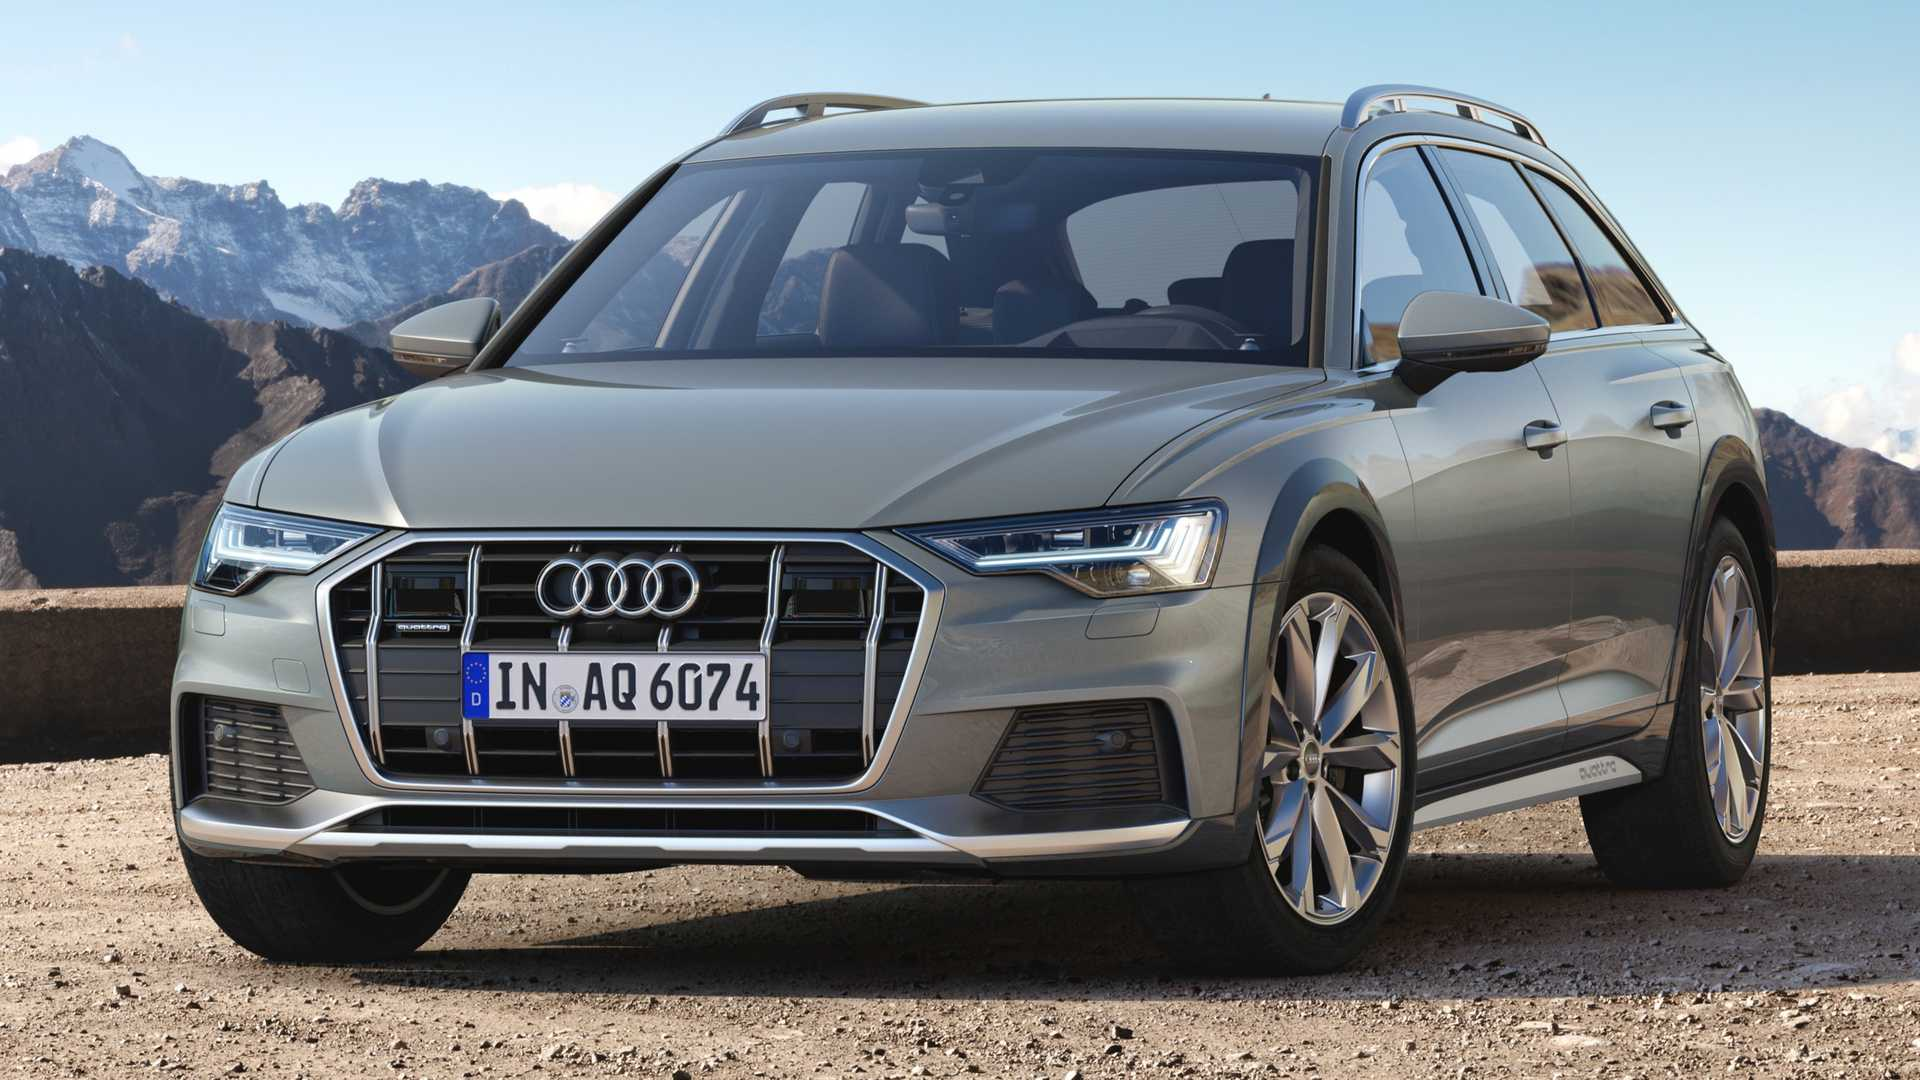 Confirmed: 2020 Audi A6 Allroad Is Returning To The U.S.